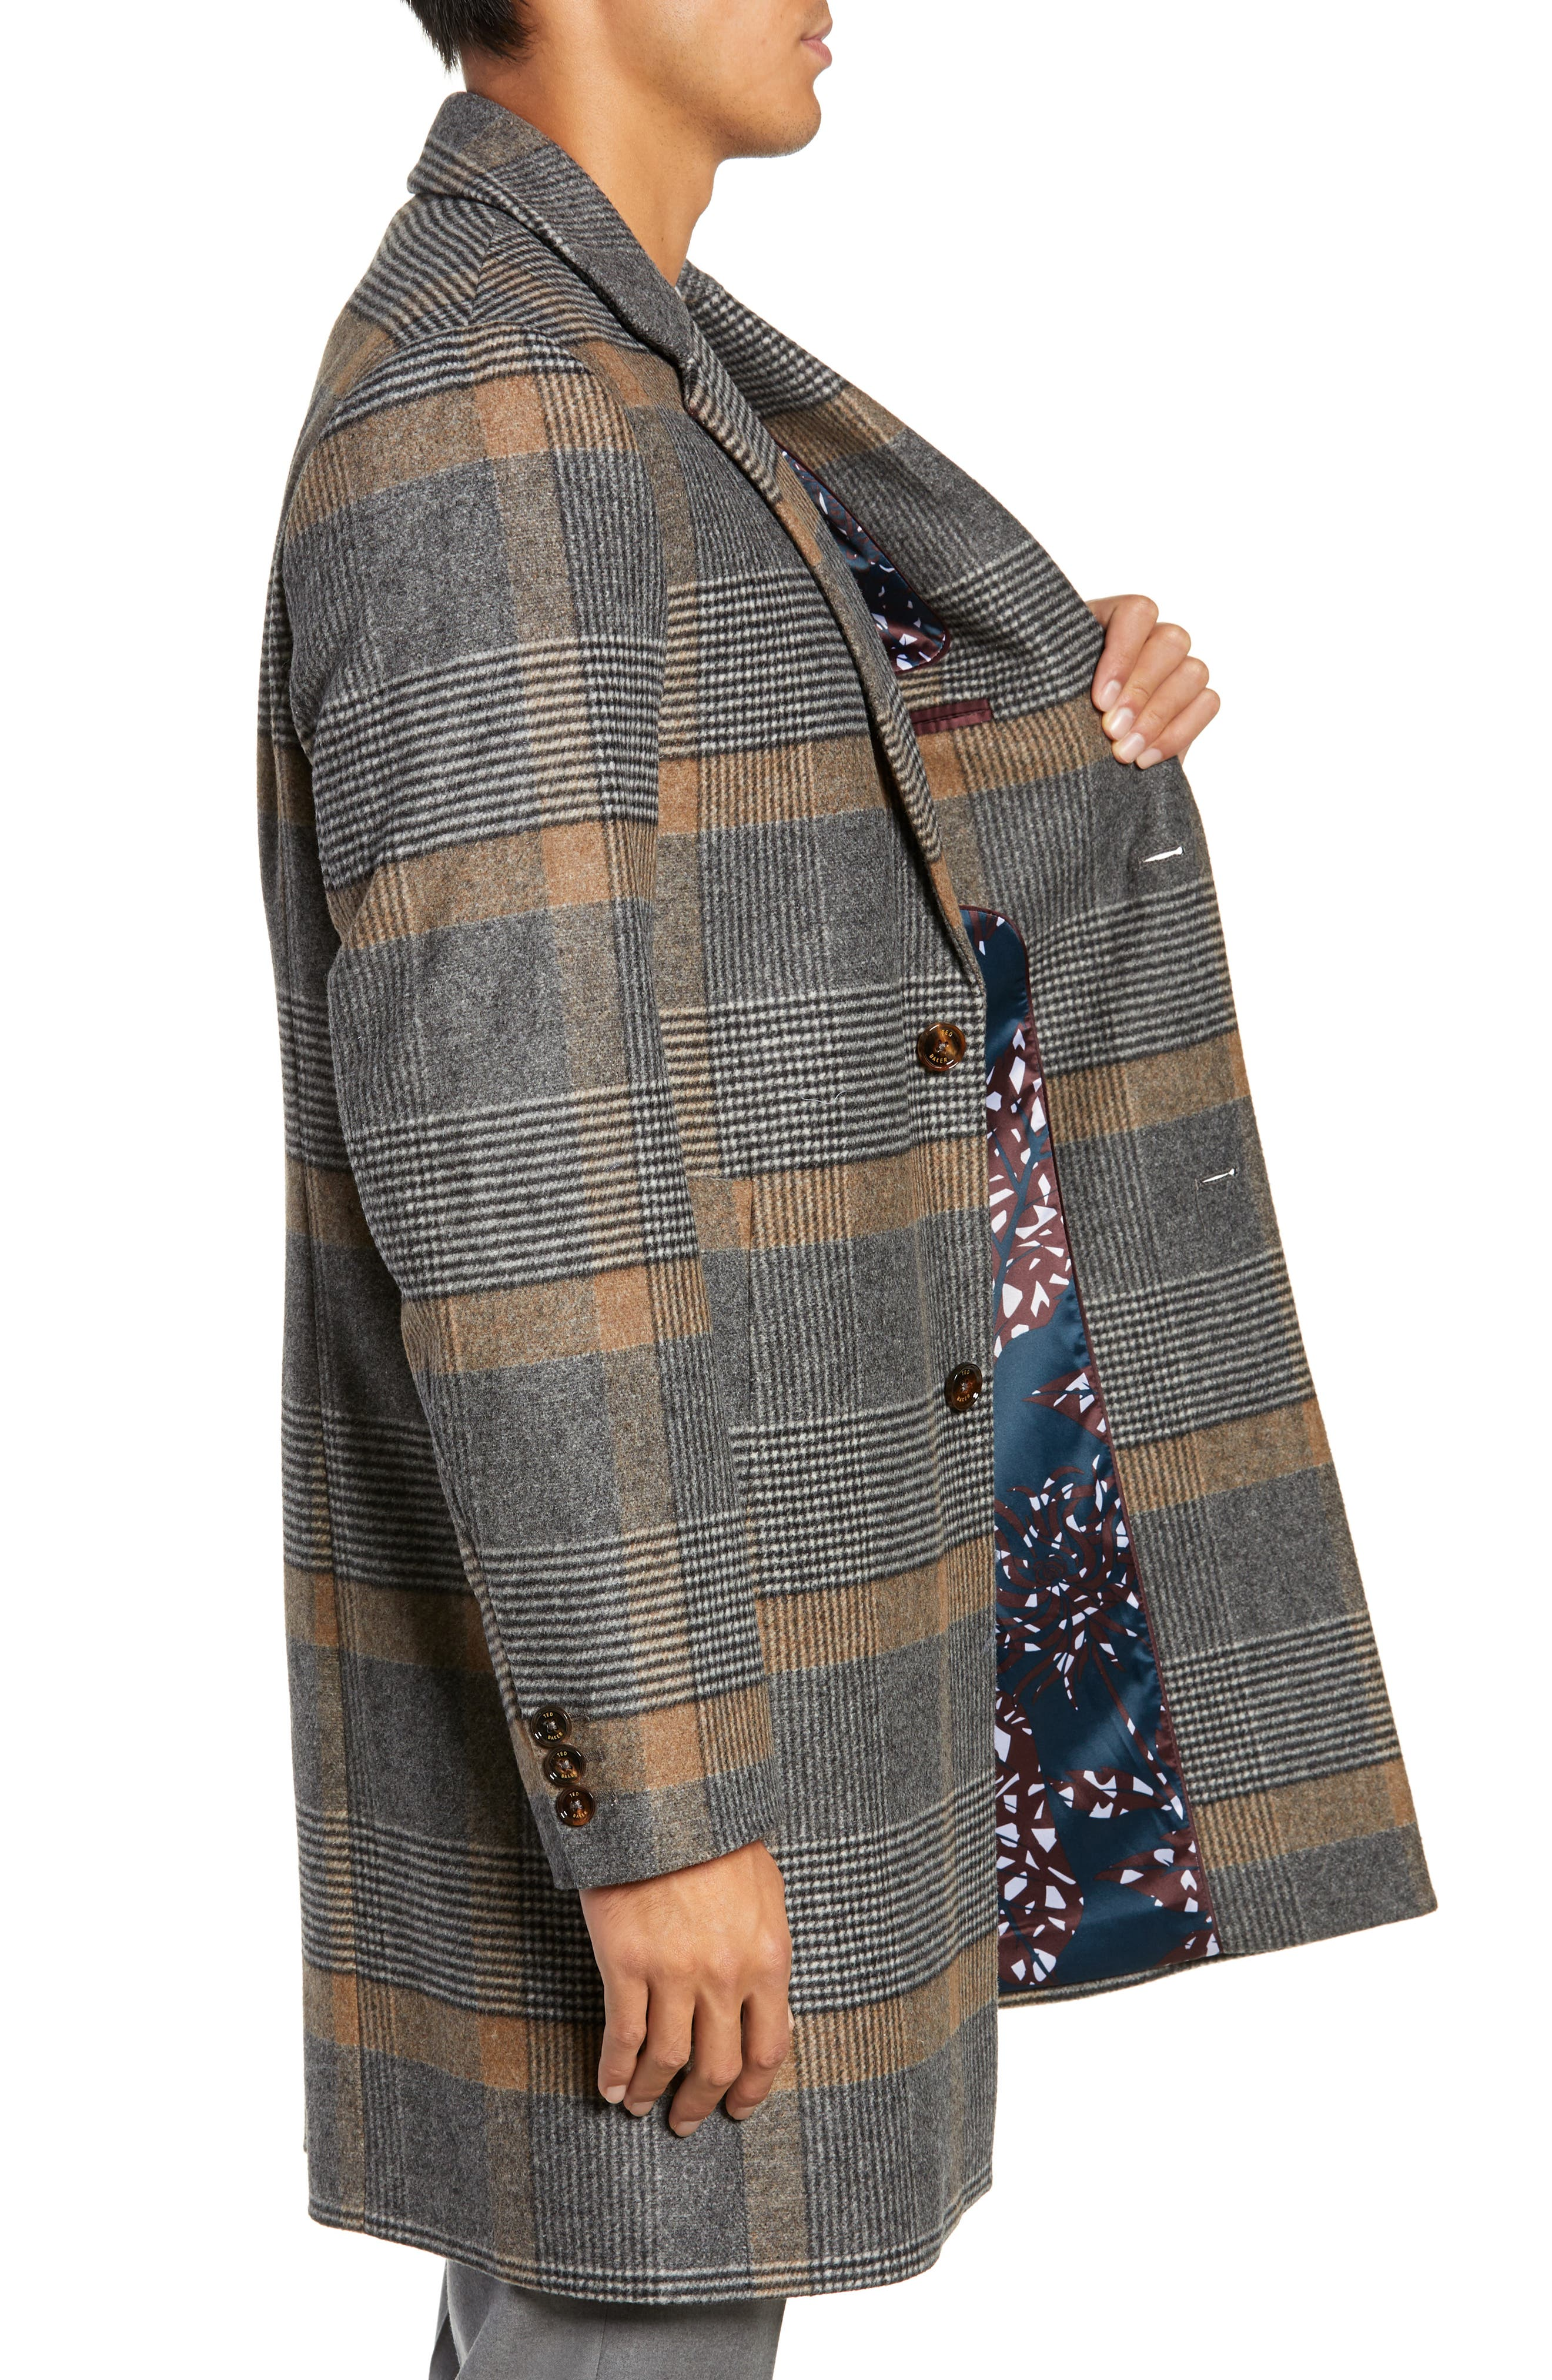 Frais Check Wool Overcoat,                             Alternate thumbnail 3, color,                             CAMEL